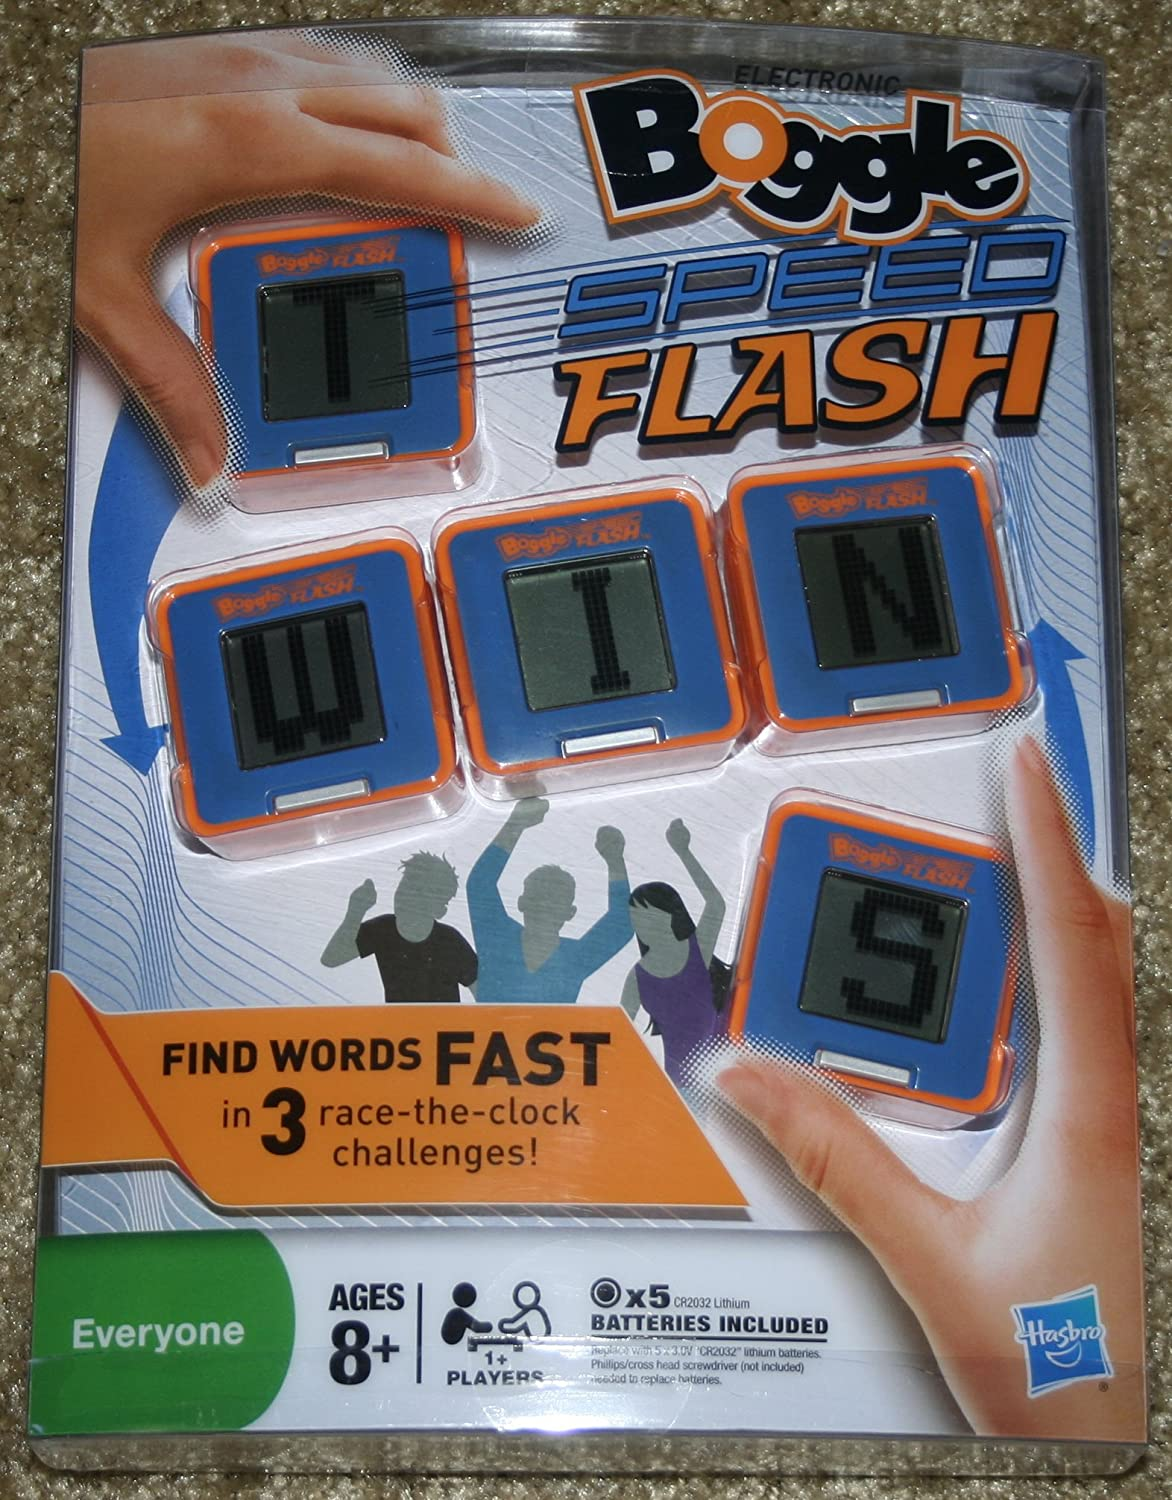 Amazon Electronic Boggle Exclusive Speed Flash Game Toys Games